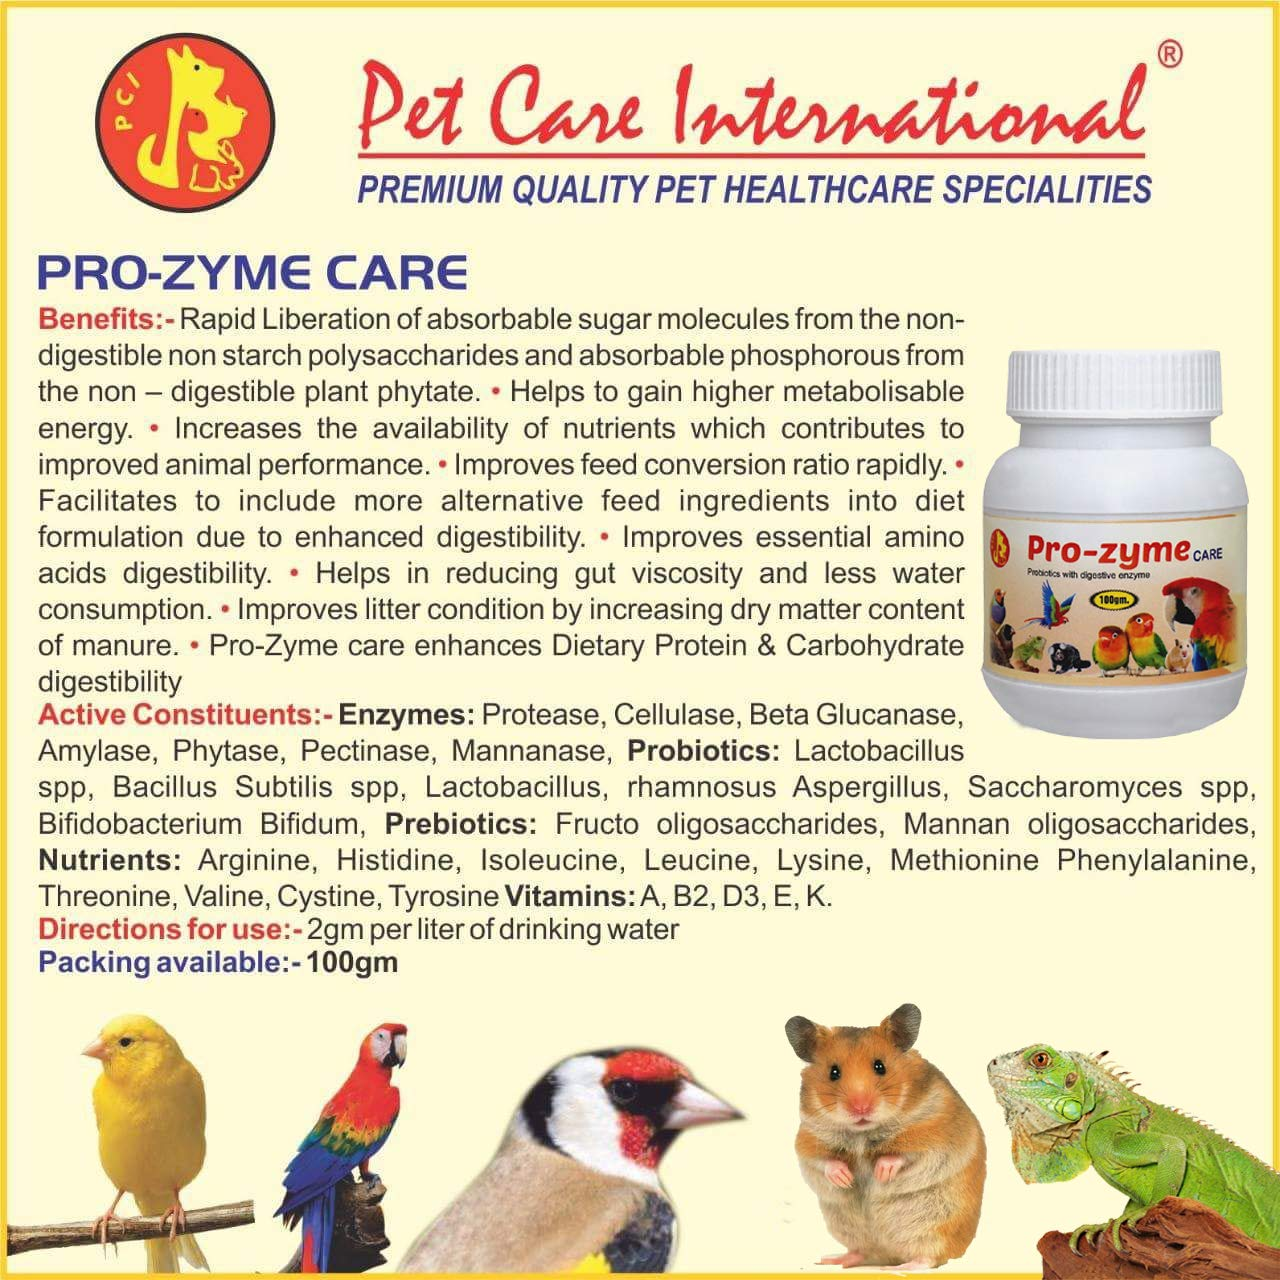 Amazon.com: Pet Care International (PCI Pro-Zyme Care ...